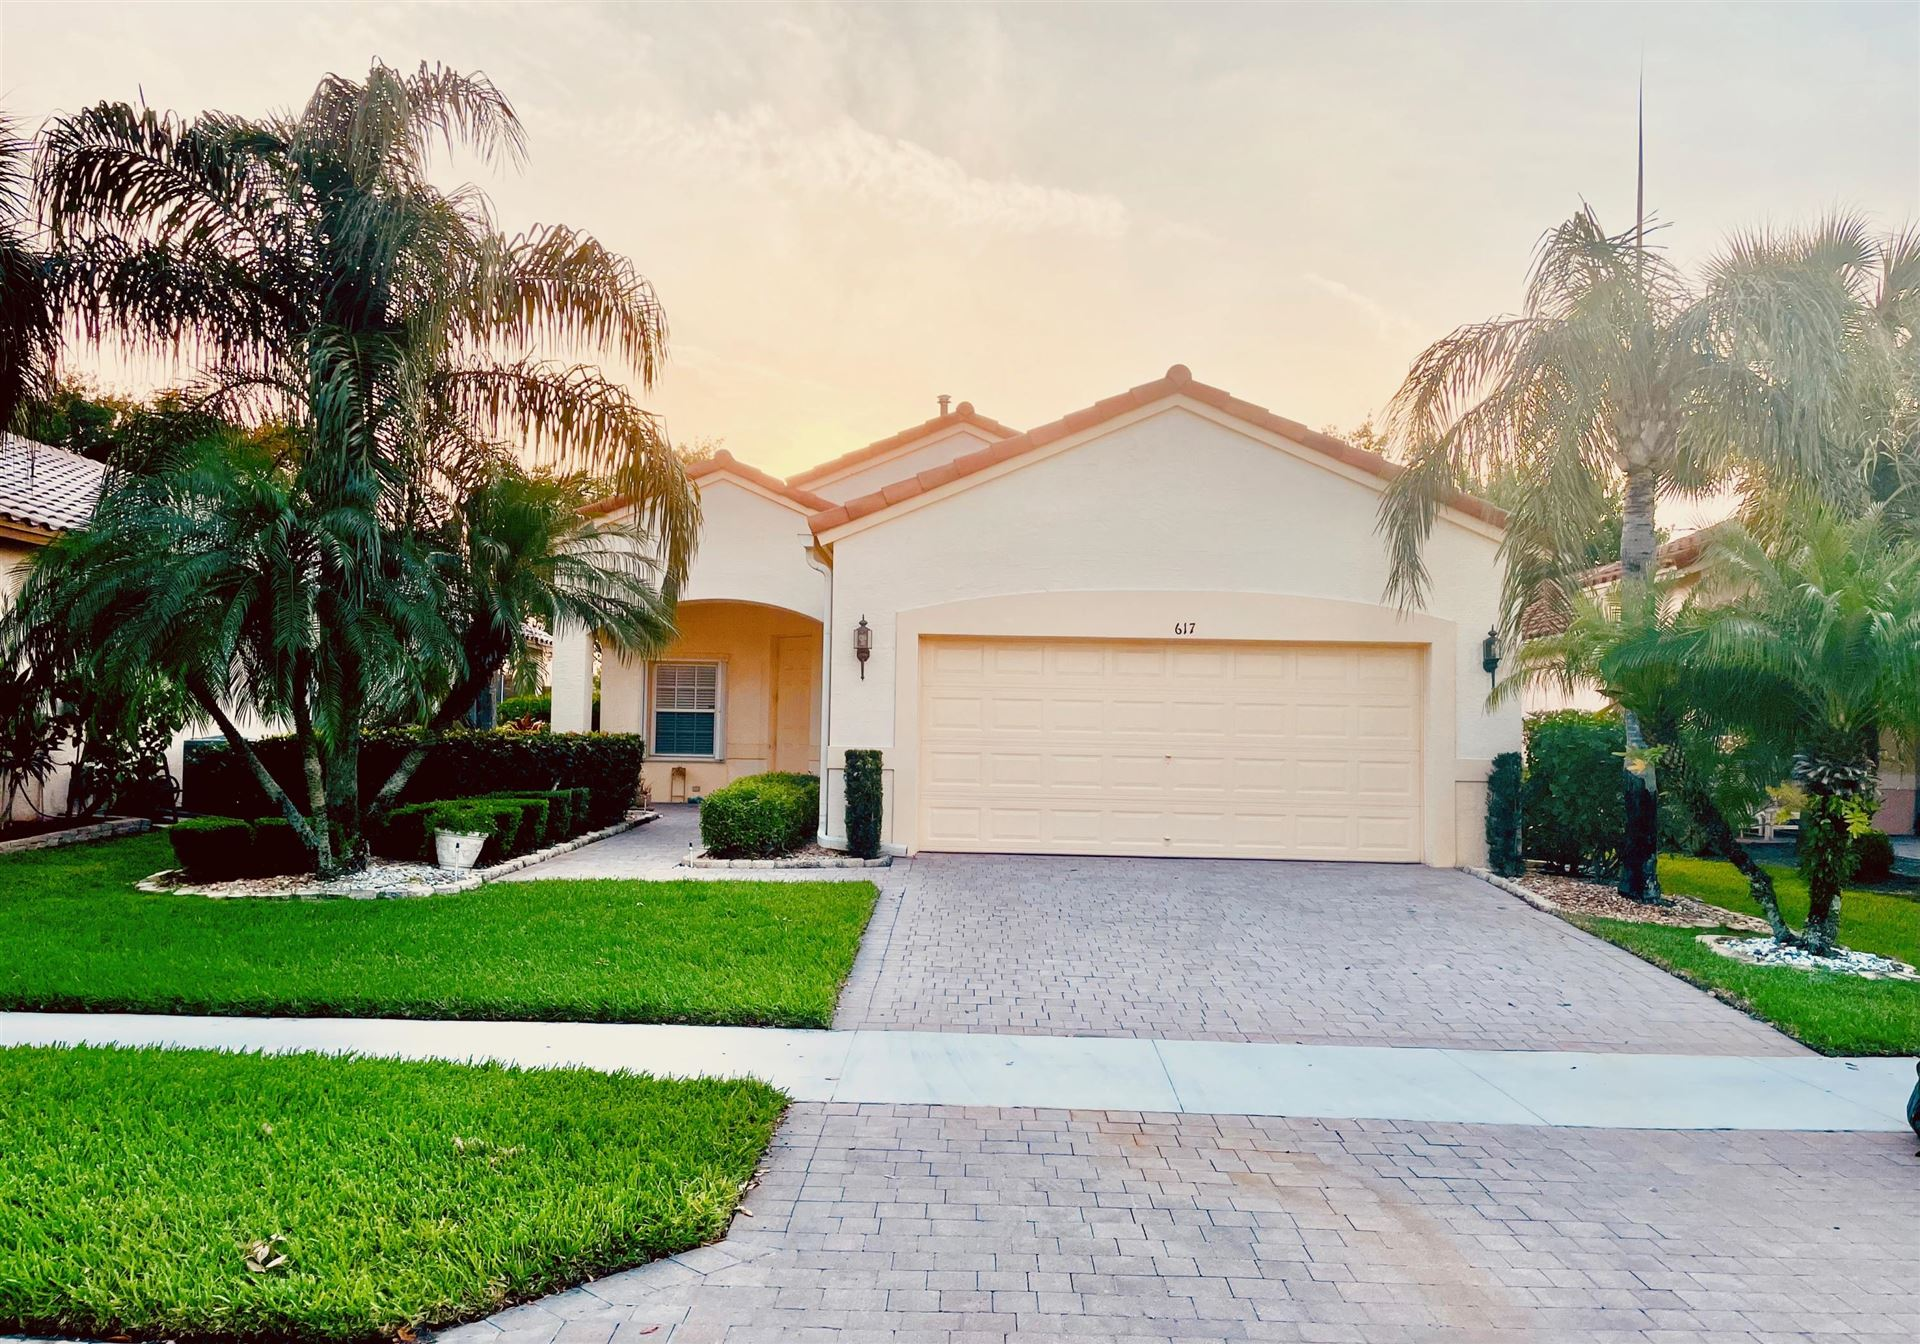 Photo of 617 NW Whitfield Way, Port Saint Lucie, FL 34986 (MLS # RX-10712720)